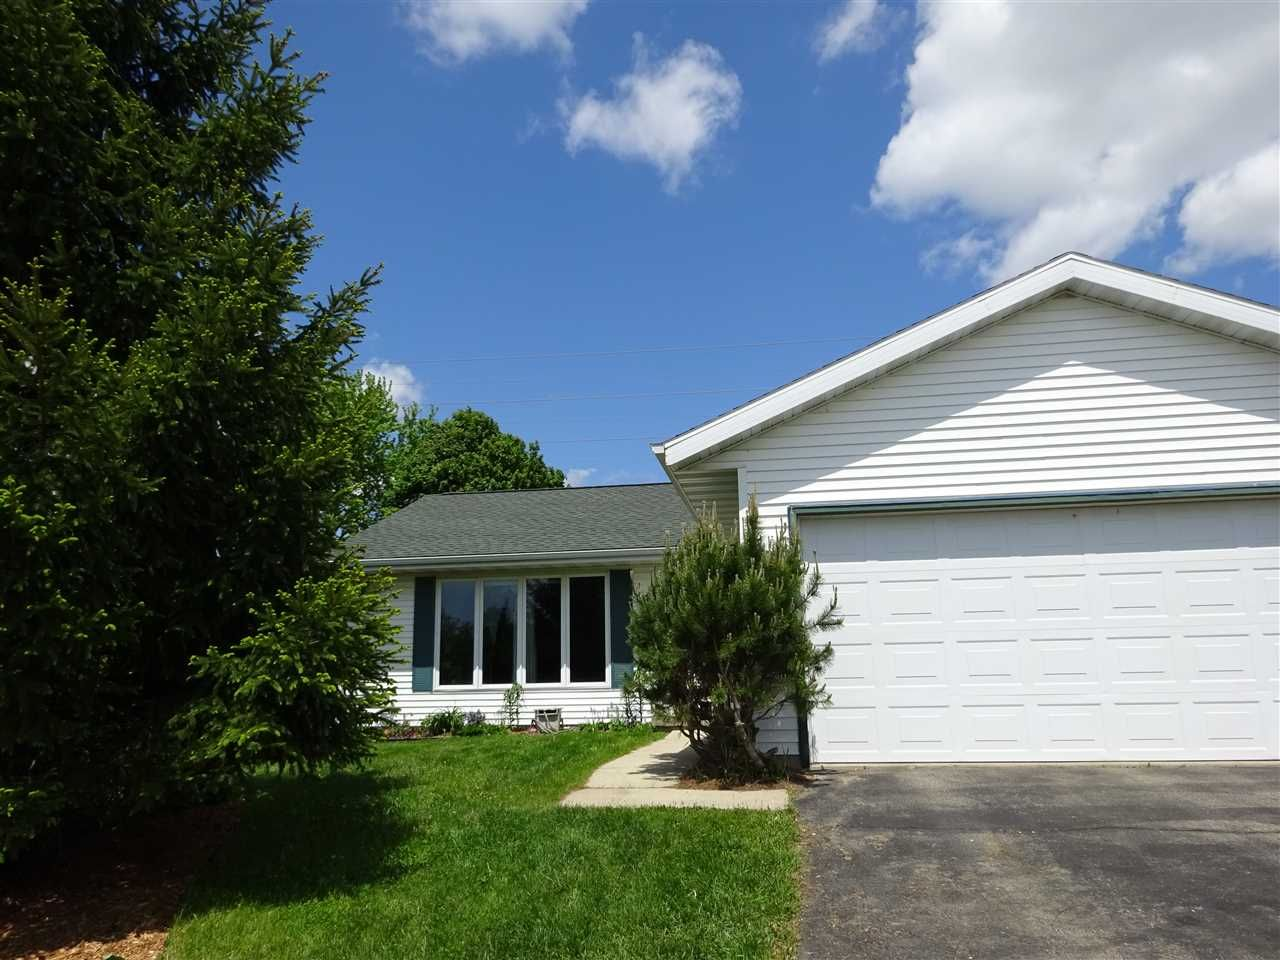 6338 Hartford Dr  Madison , WI  53719  - $209,000  #MadisonWI #MadisonWIRealEstate Click for more pics